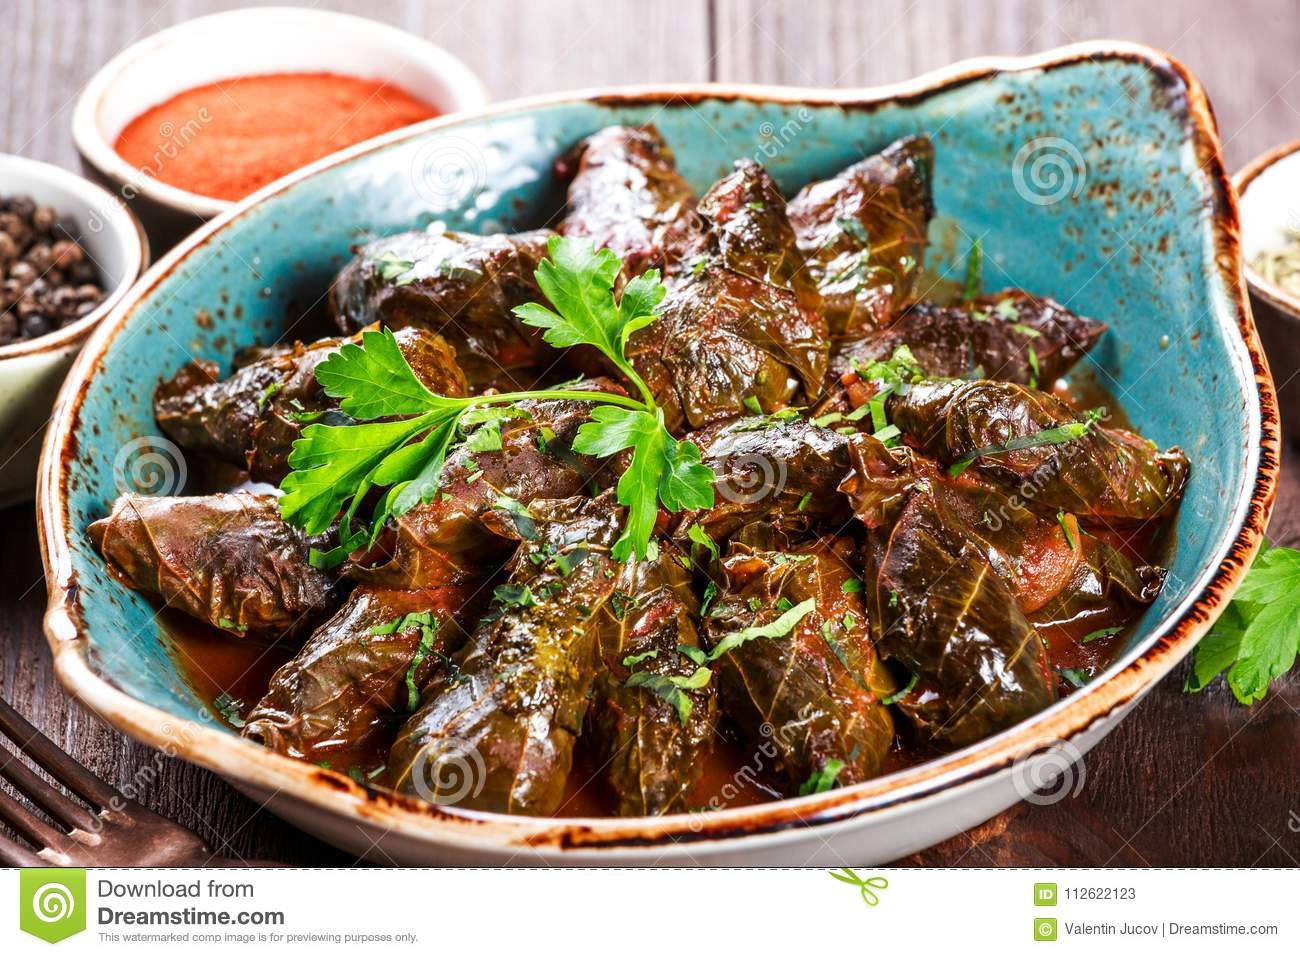 Stuffed grape leaves with rice and herbs on plate on wooden background - Dolma, tolma, sarma.